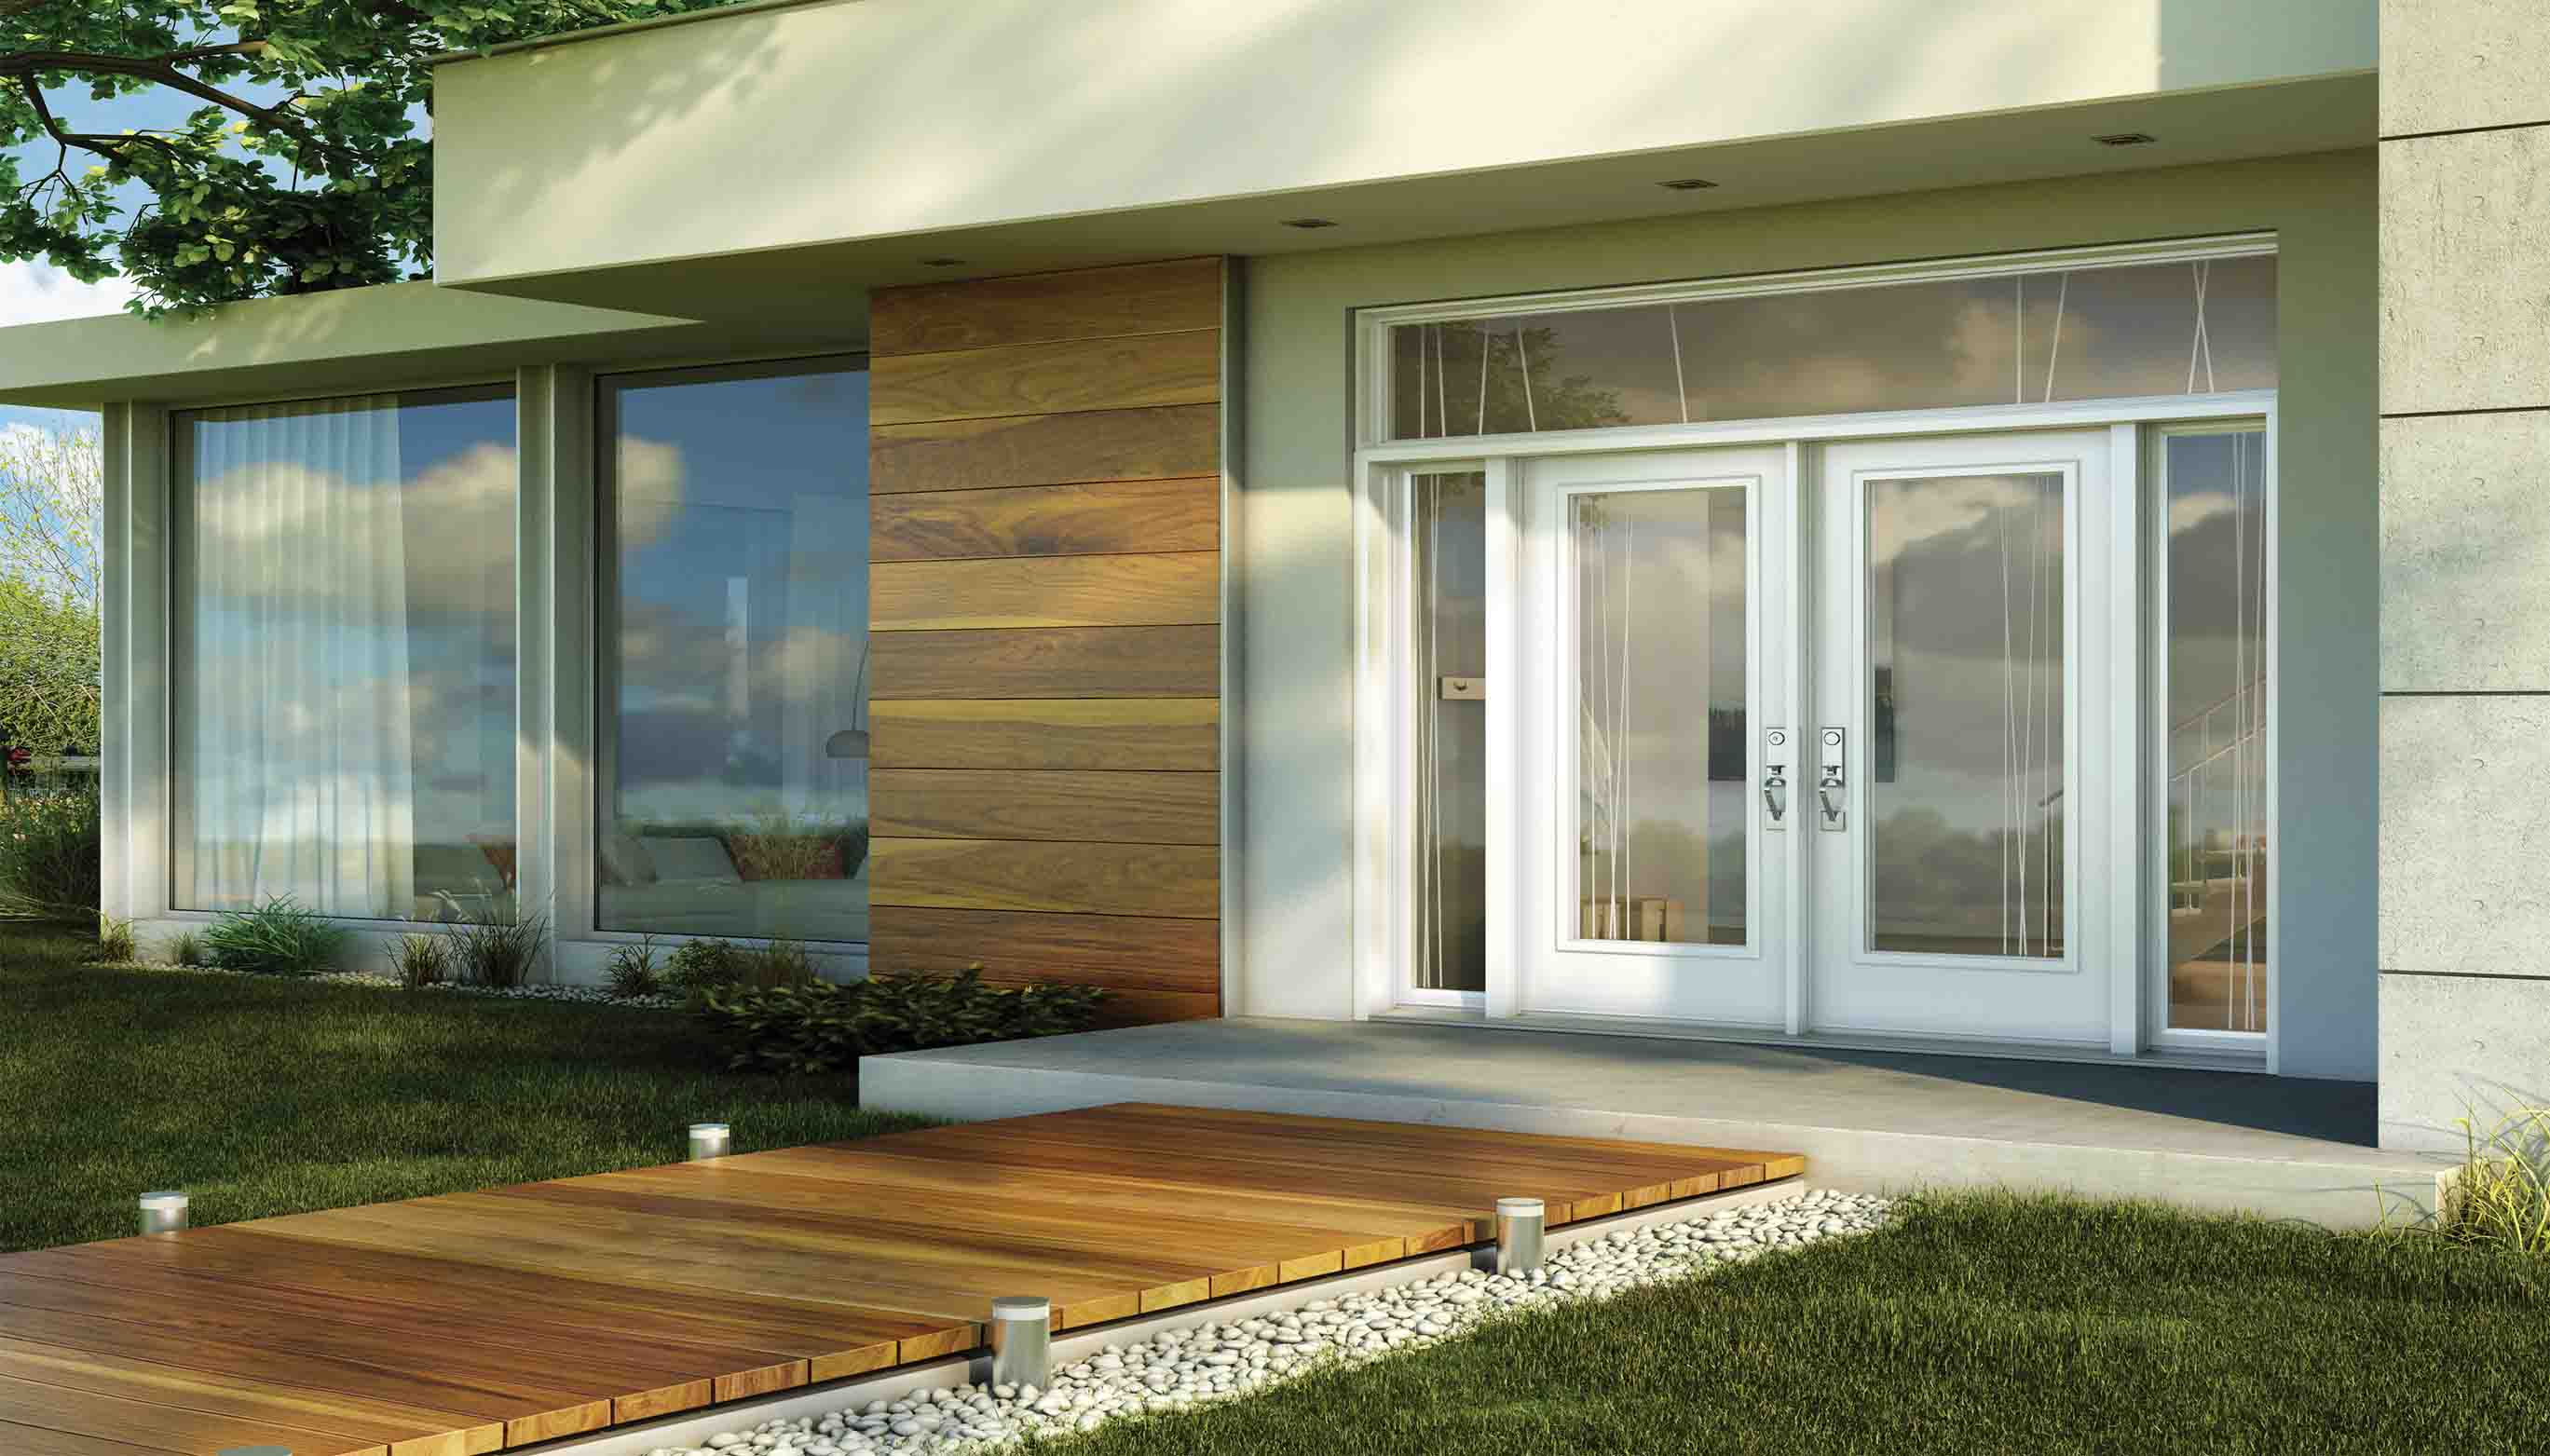 3 Door Patio Doors, Modern Patio Doors, Fix Patio Door, Fibreglass Patio Doors, Patio Doors And Windows